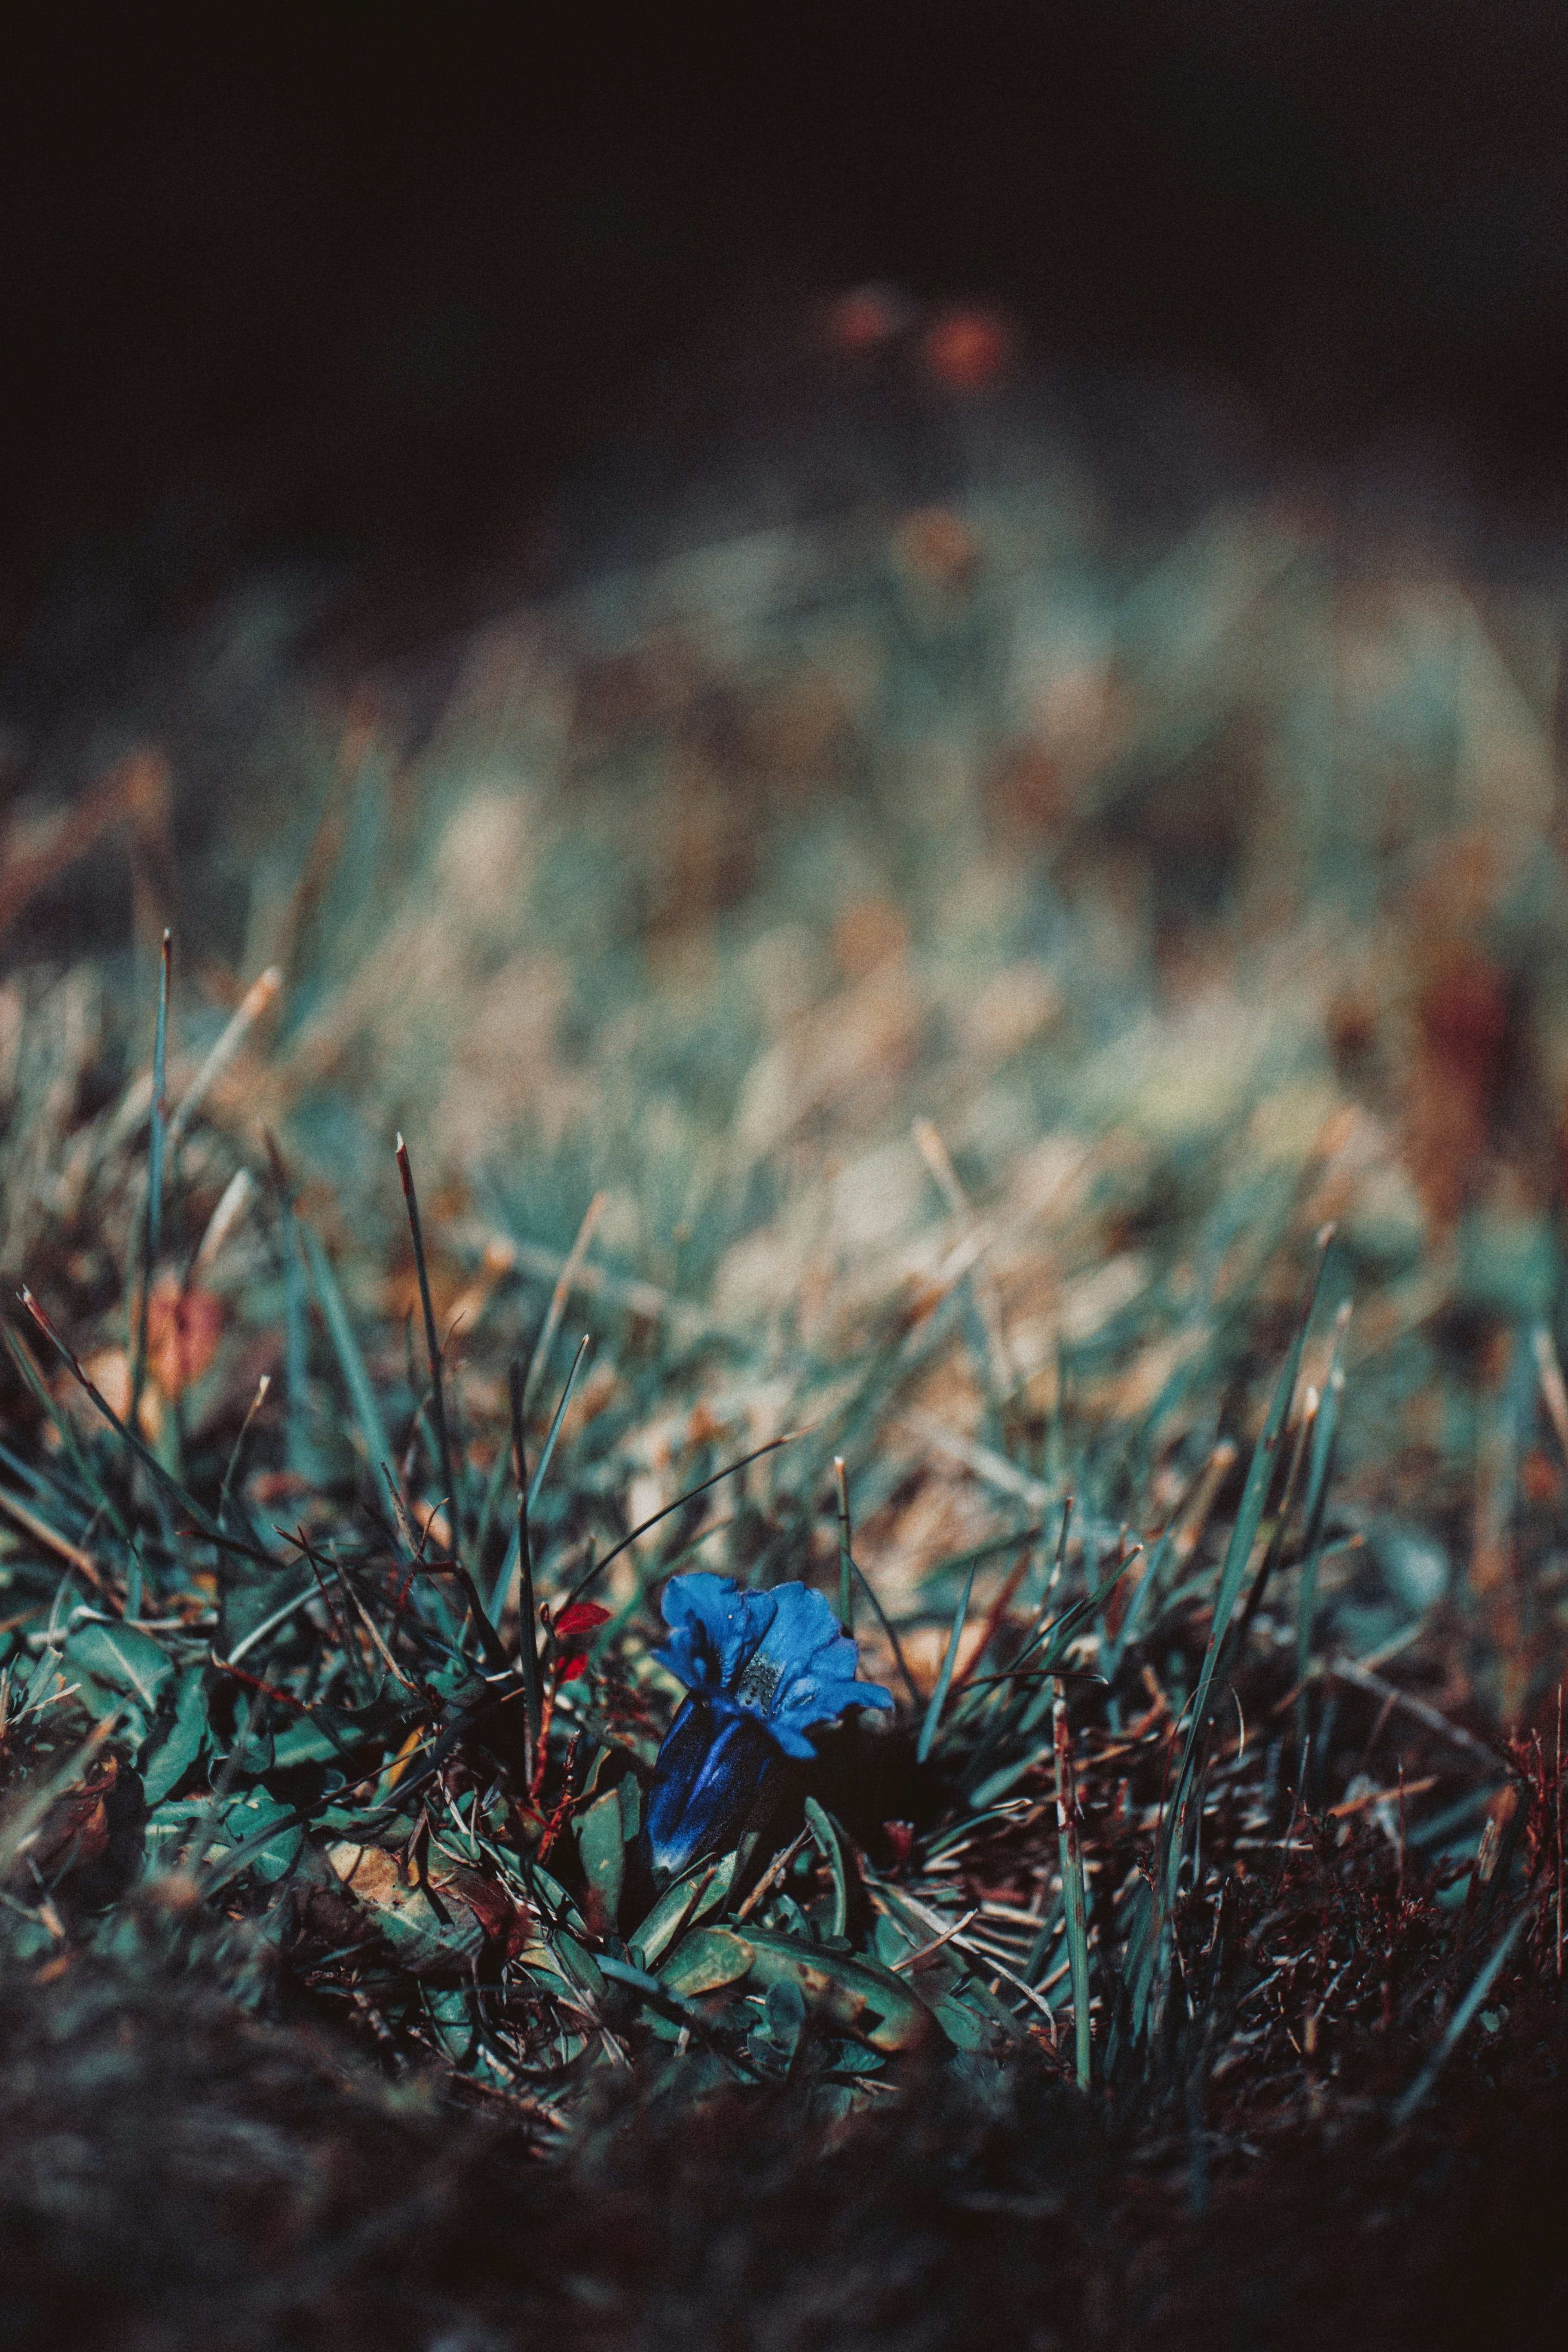 Blue Flower On Green Grass